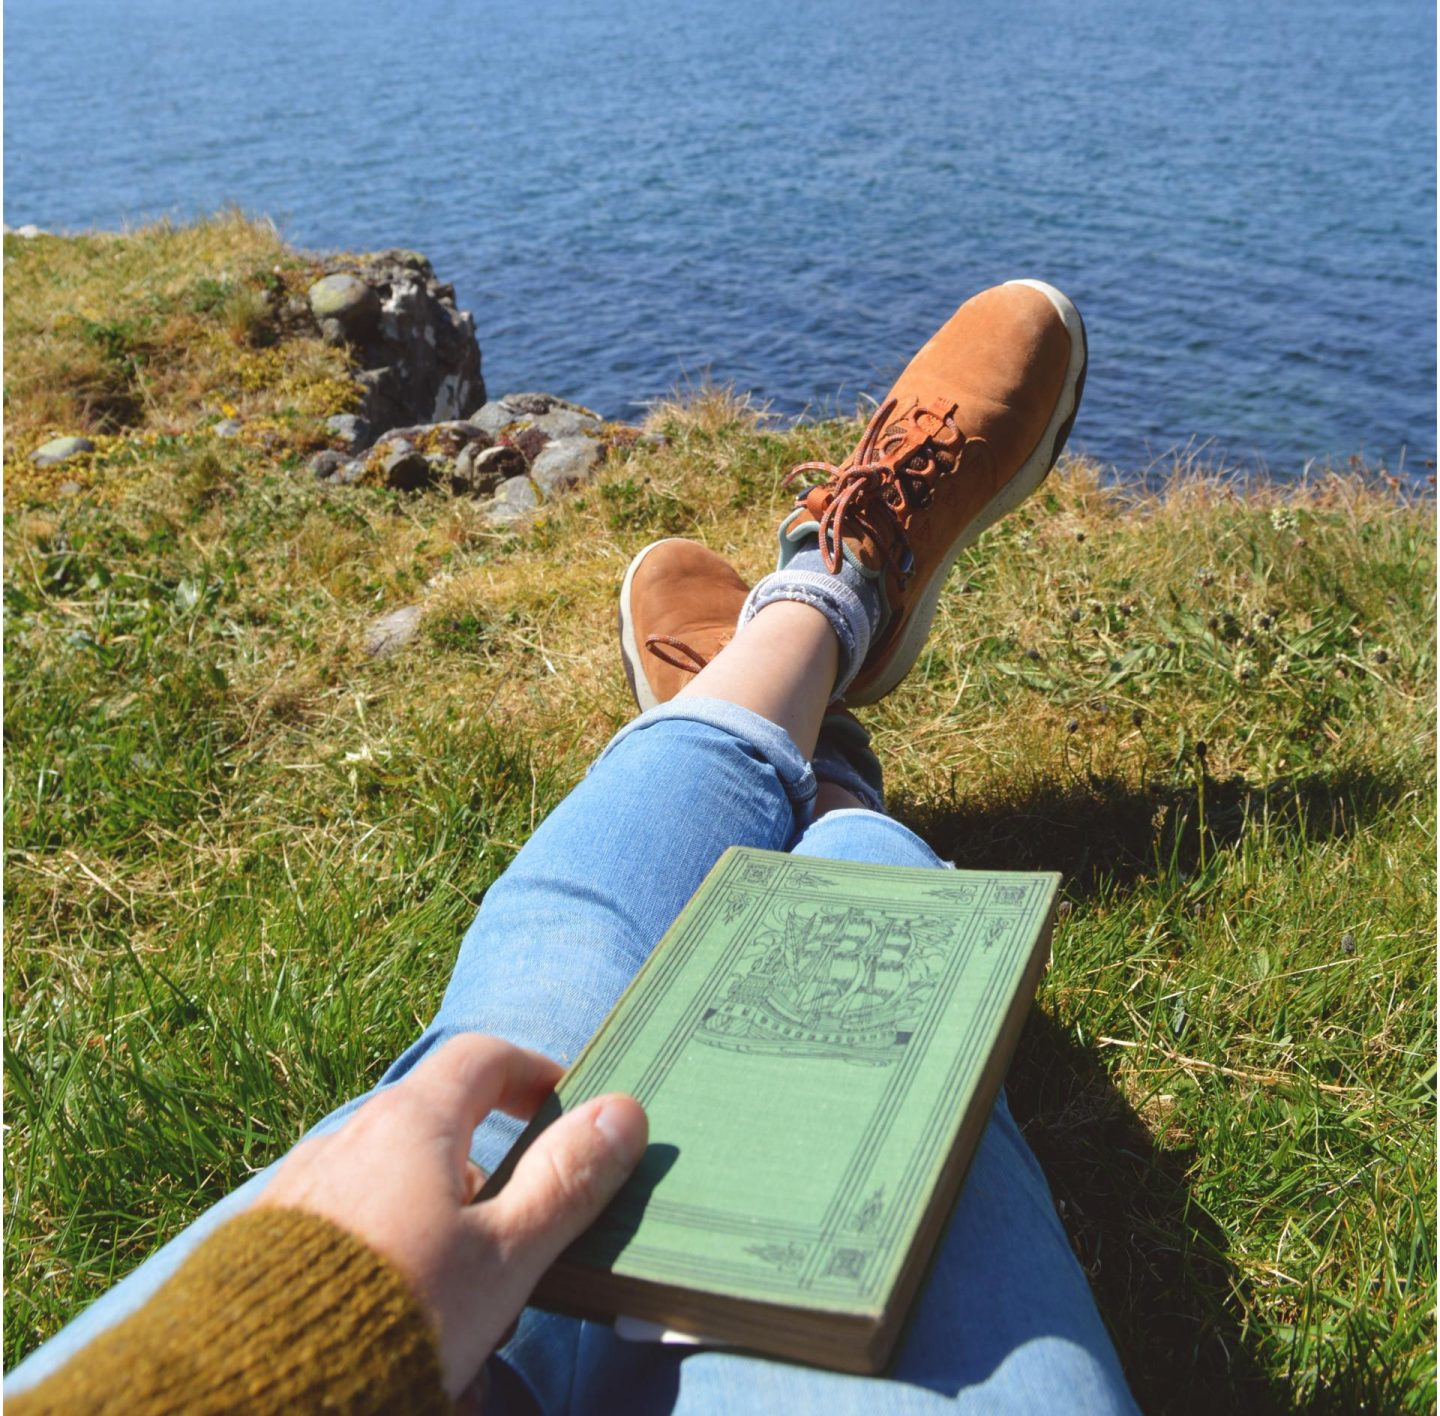 Best Travel And Outdoor Books |  Favourite Adventure Books chosen by Sian Lewis